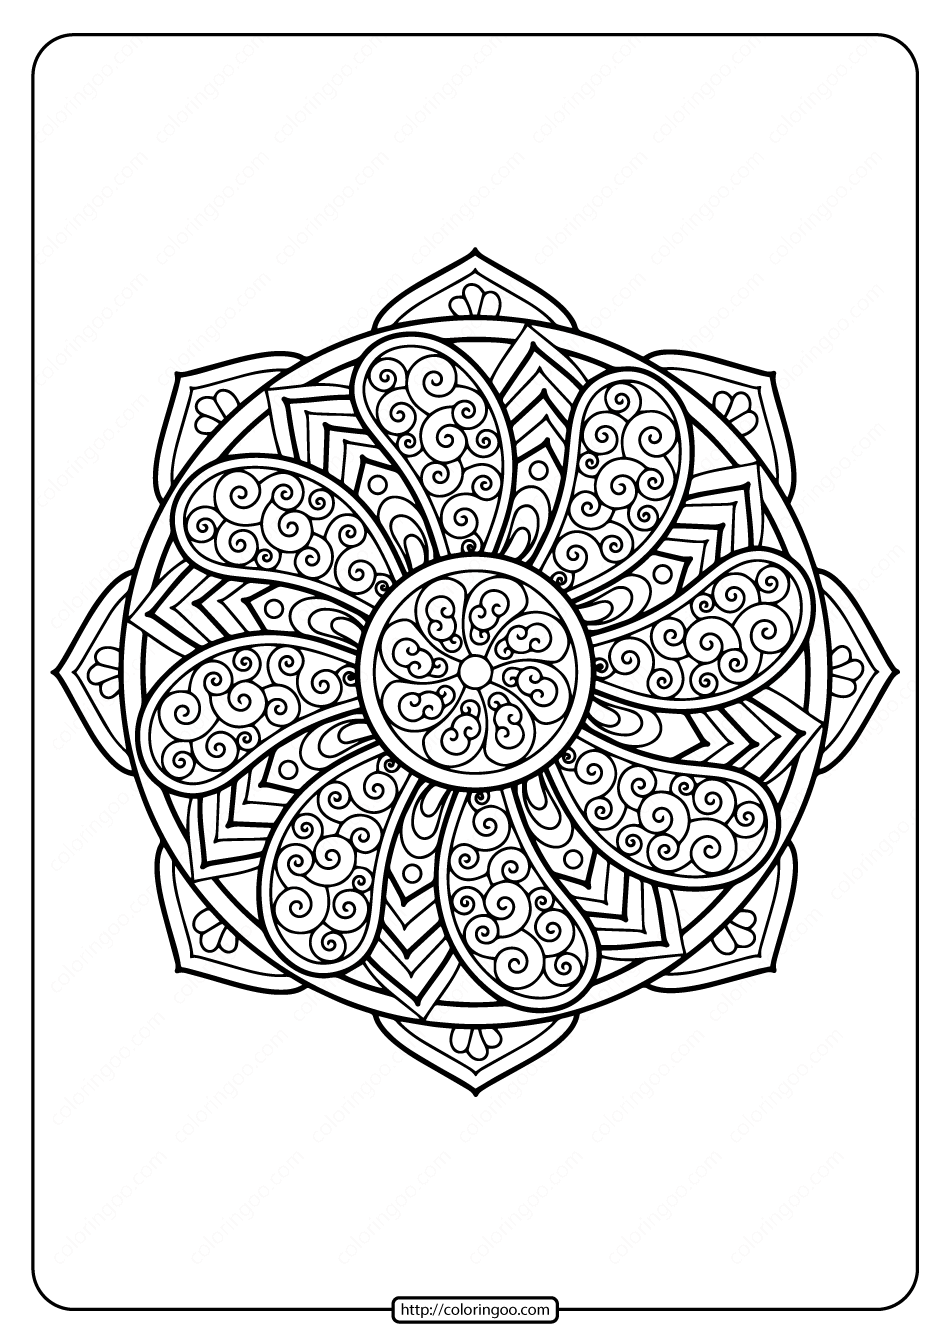 Printable Floral Mandala PDF Coloring Pages 33